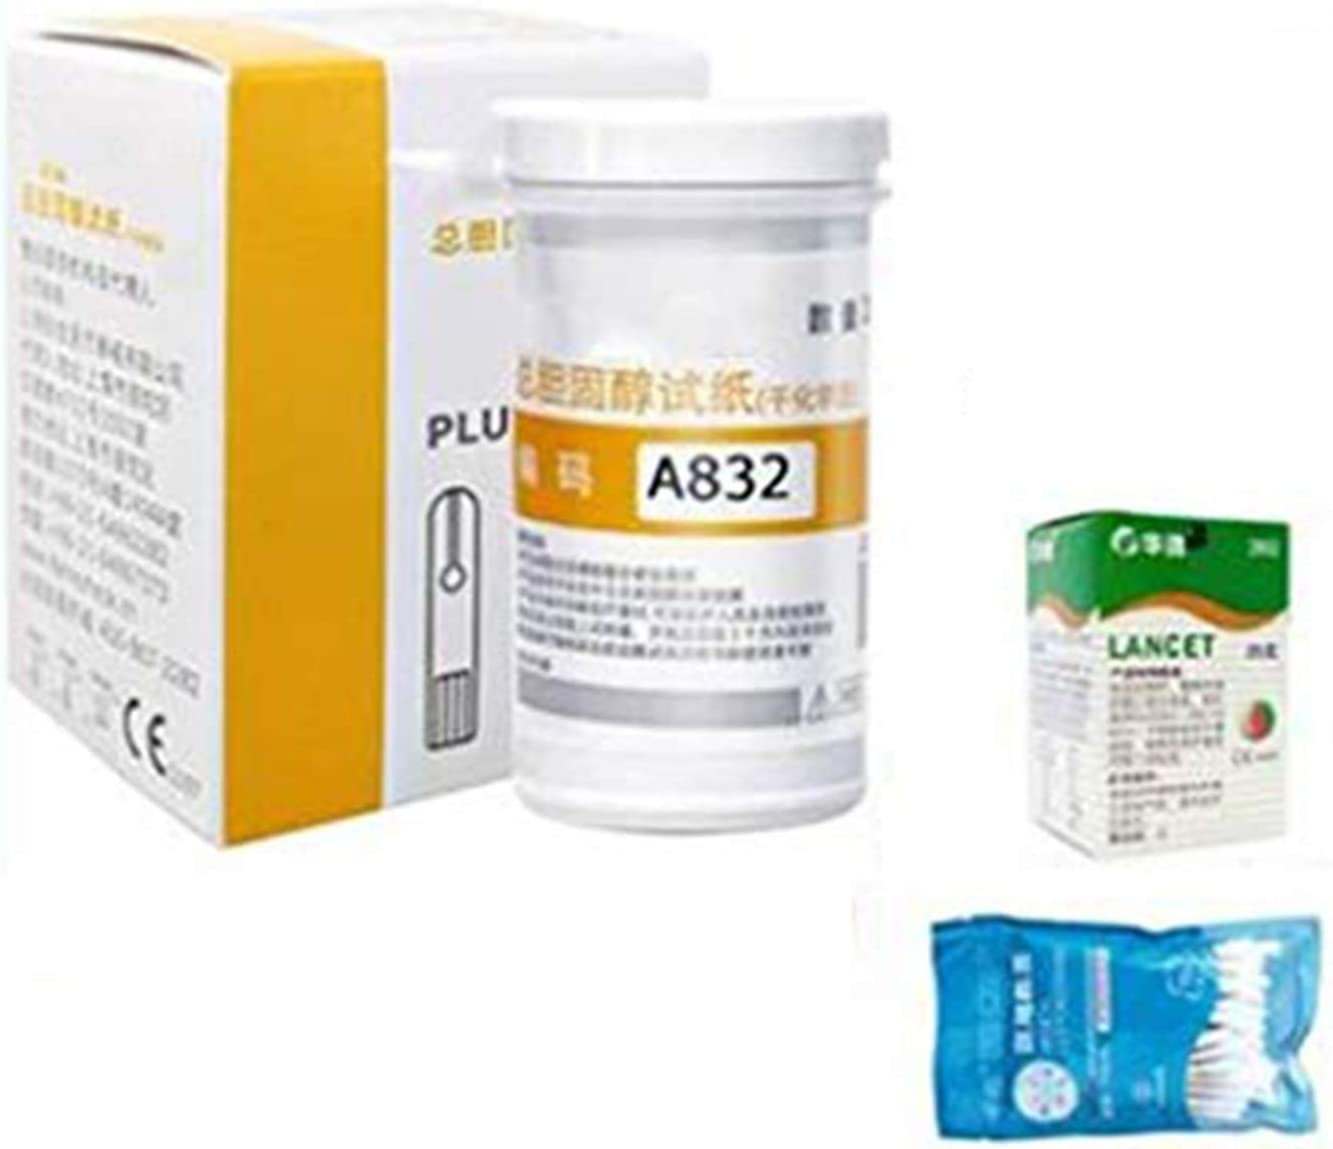 CYYYY Cholesterol Test Kit for Home, 3 in 1 Multi-Function Cholesterol,Blood Sugar,Uric Acid Test Meter,and Test Paper for Health Home Tests (Size : Cholesterol Test Paper)